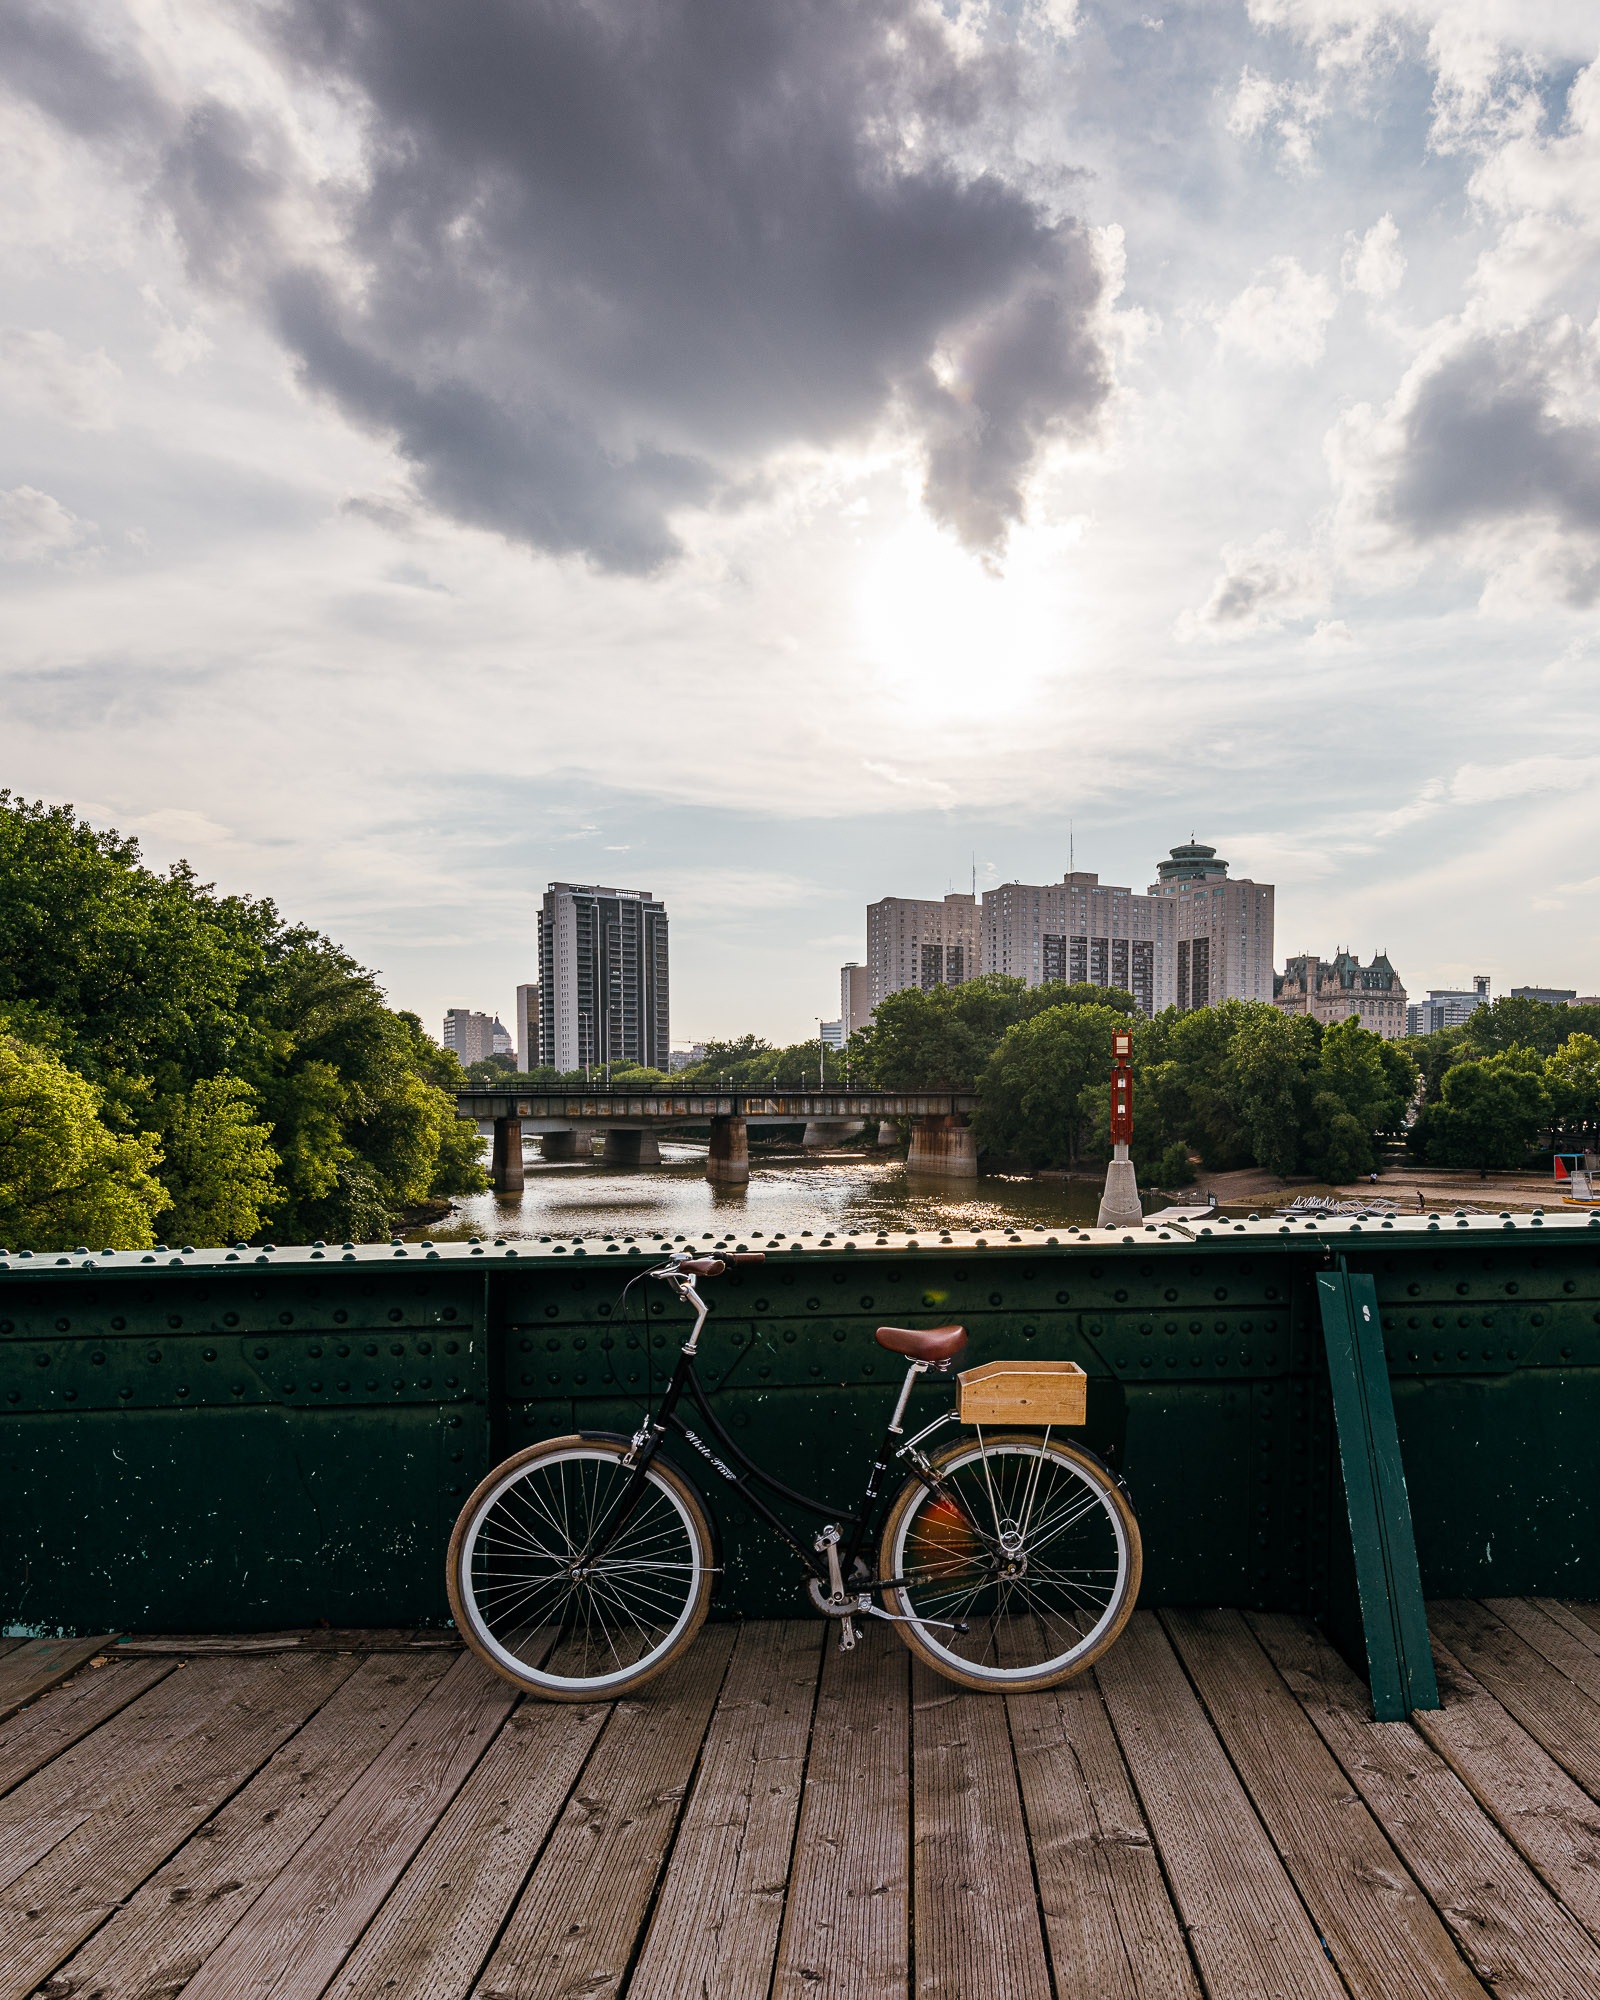 Bike ride through North River Heights and Wolseley — Winnipeg — Manitoba — Jeff Frenette Photography — Jeff On The Road - All photos are under Copyright  © 2019 Jeff Frenette Photography / dezjeff. To use the photos, please contact me at dezjeff@me.com.